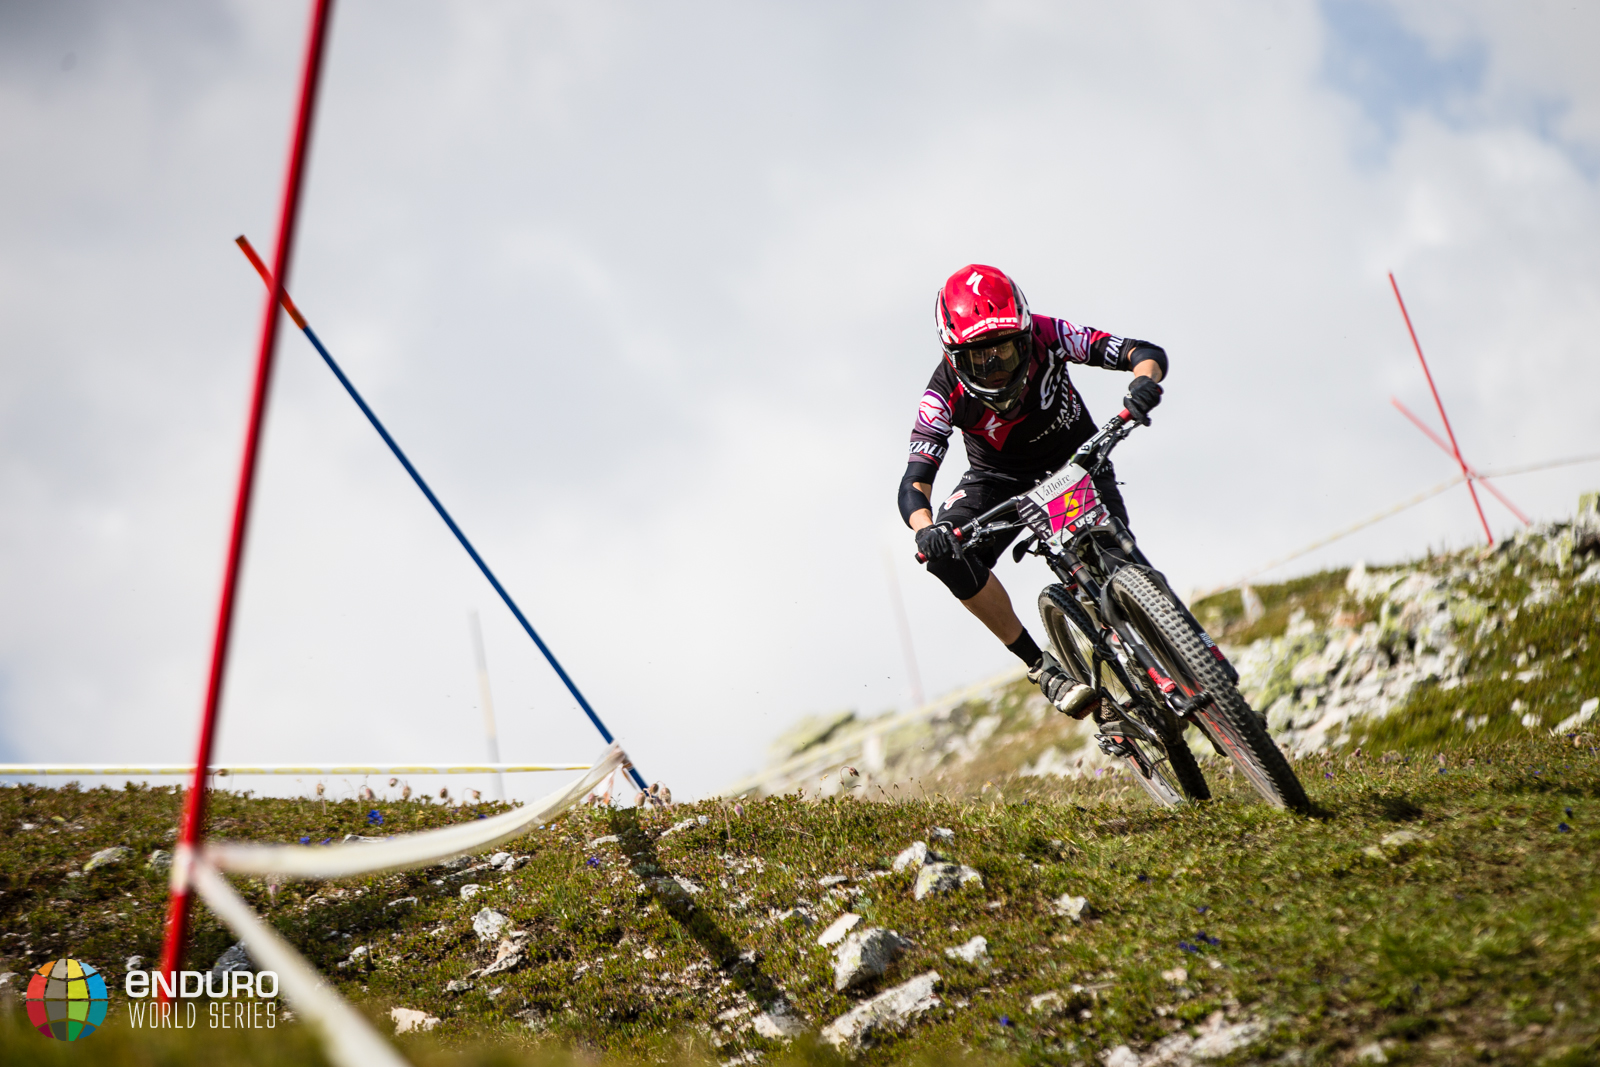 Anneke Beerten on stage three, EWS round 3 2014, Valloire. Photo by Matt Wragg